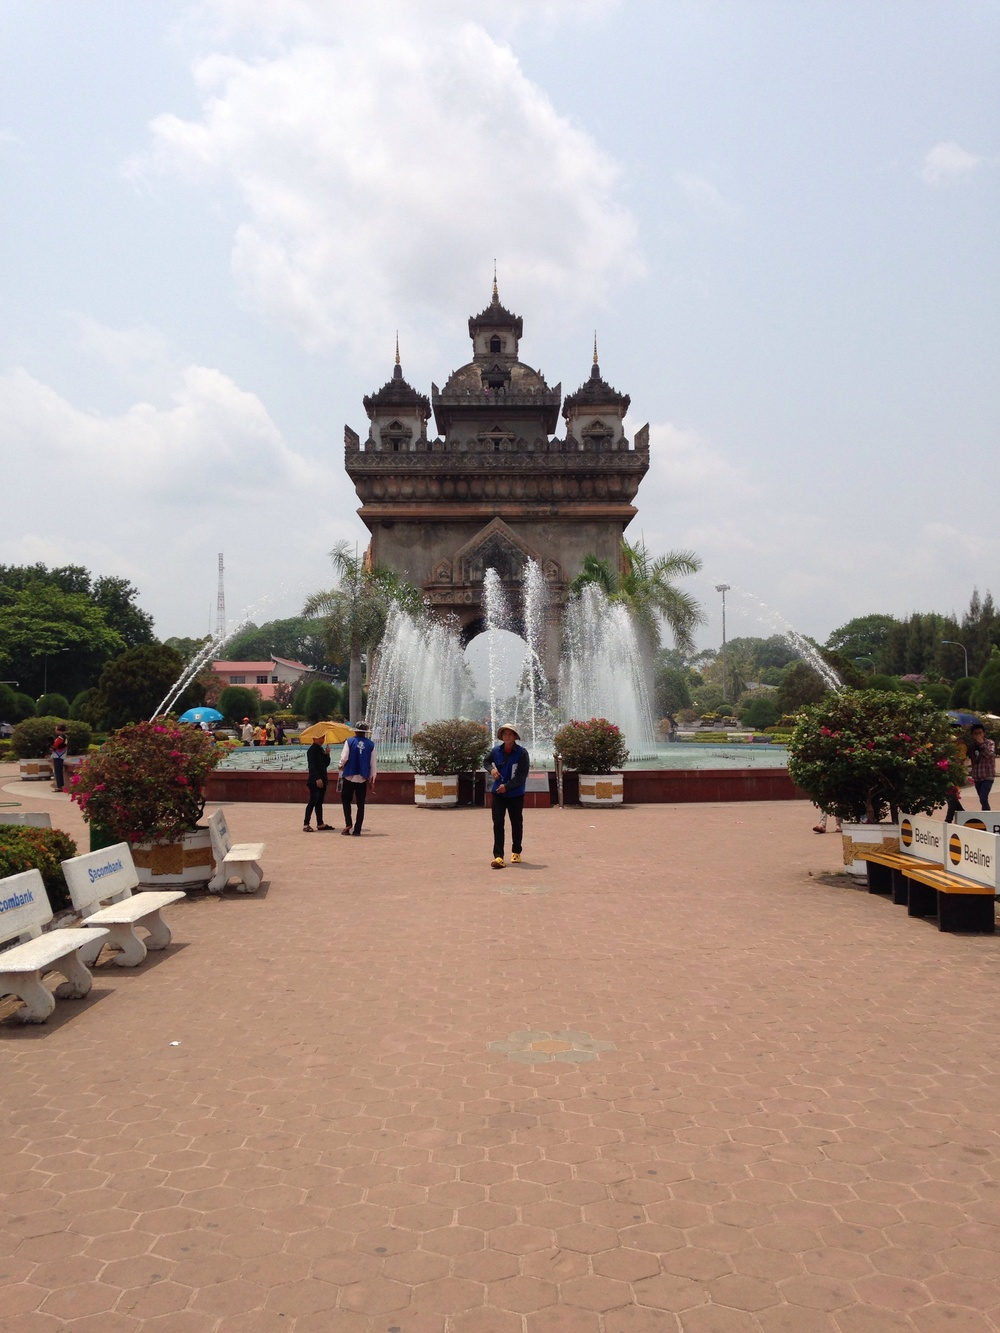 Vientiane's own take on the Arc de Triomphe, called Patuxai.